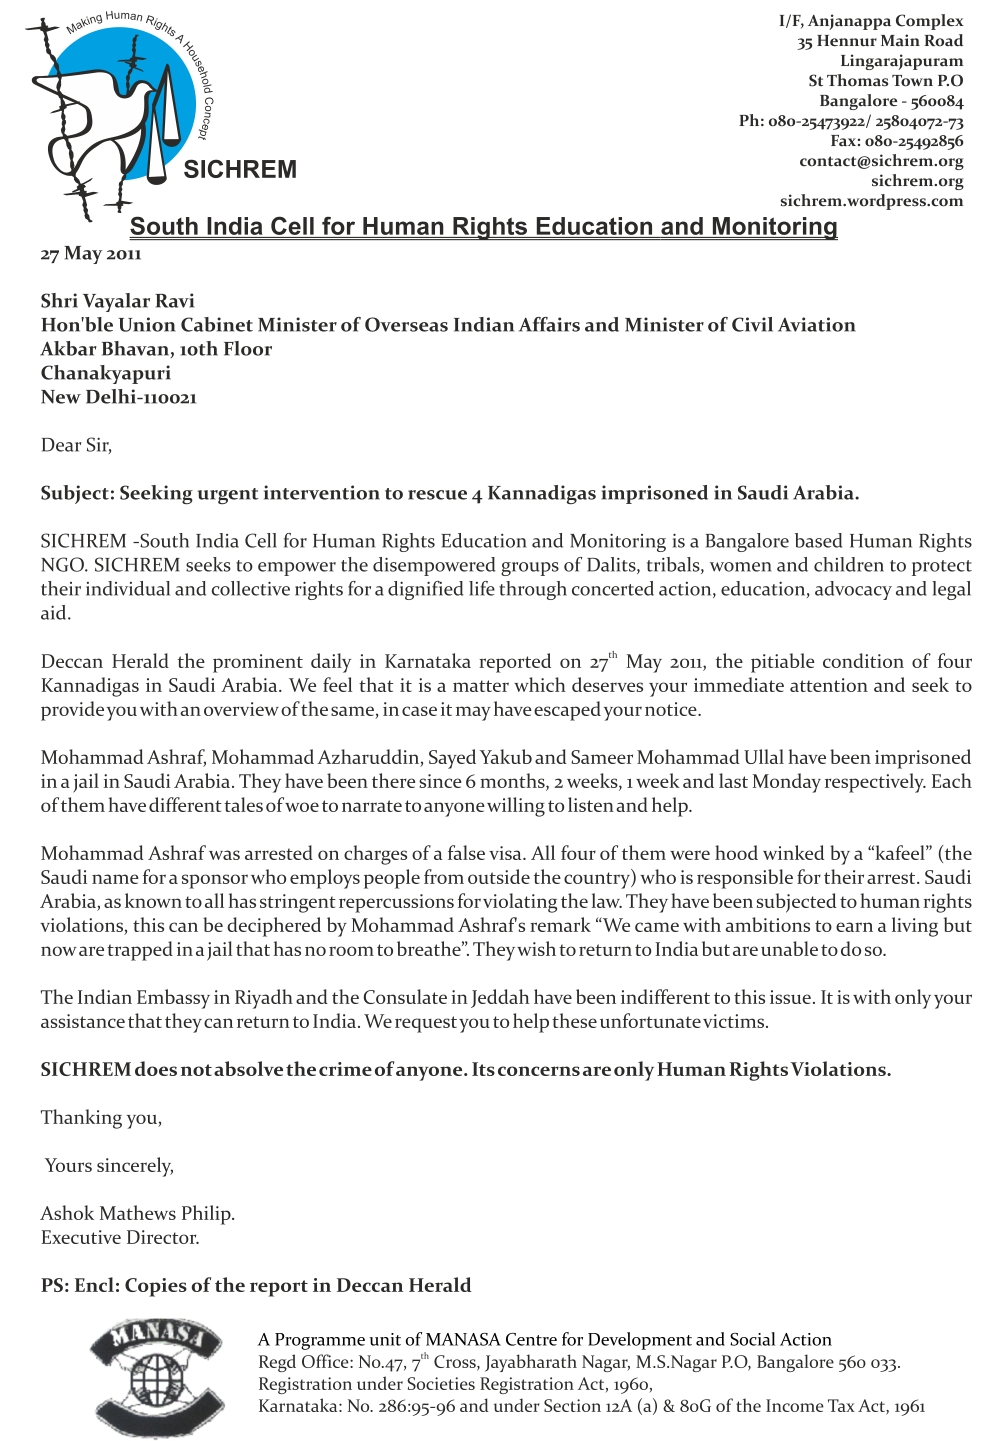 letter sent by sichrem to the hon ble union cabinet minister of